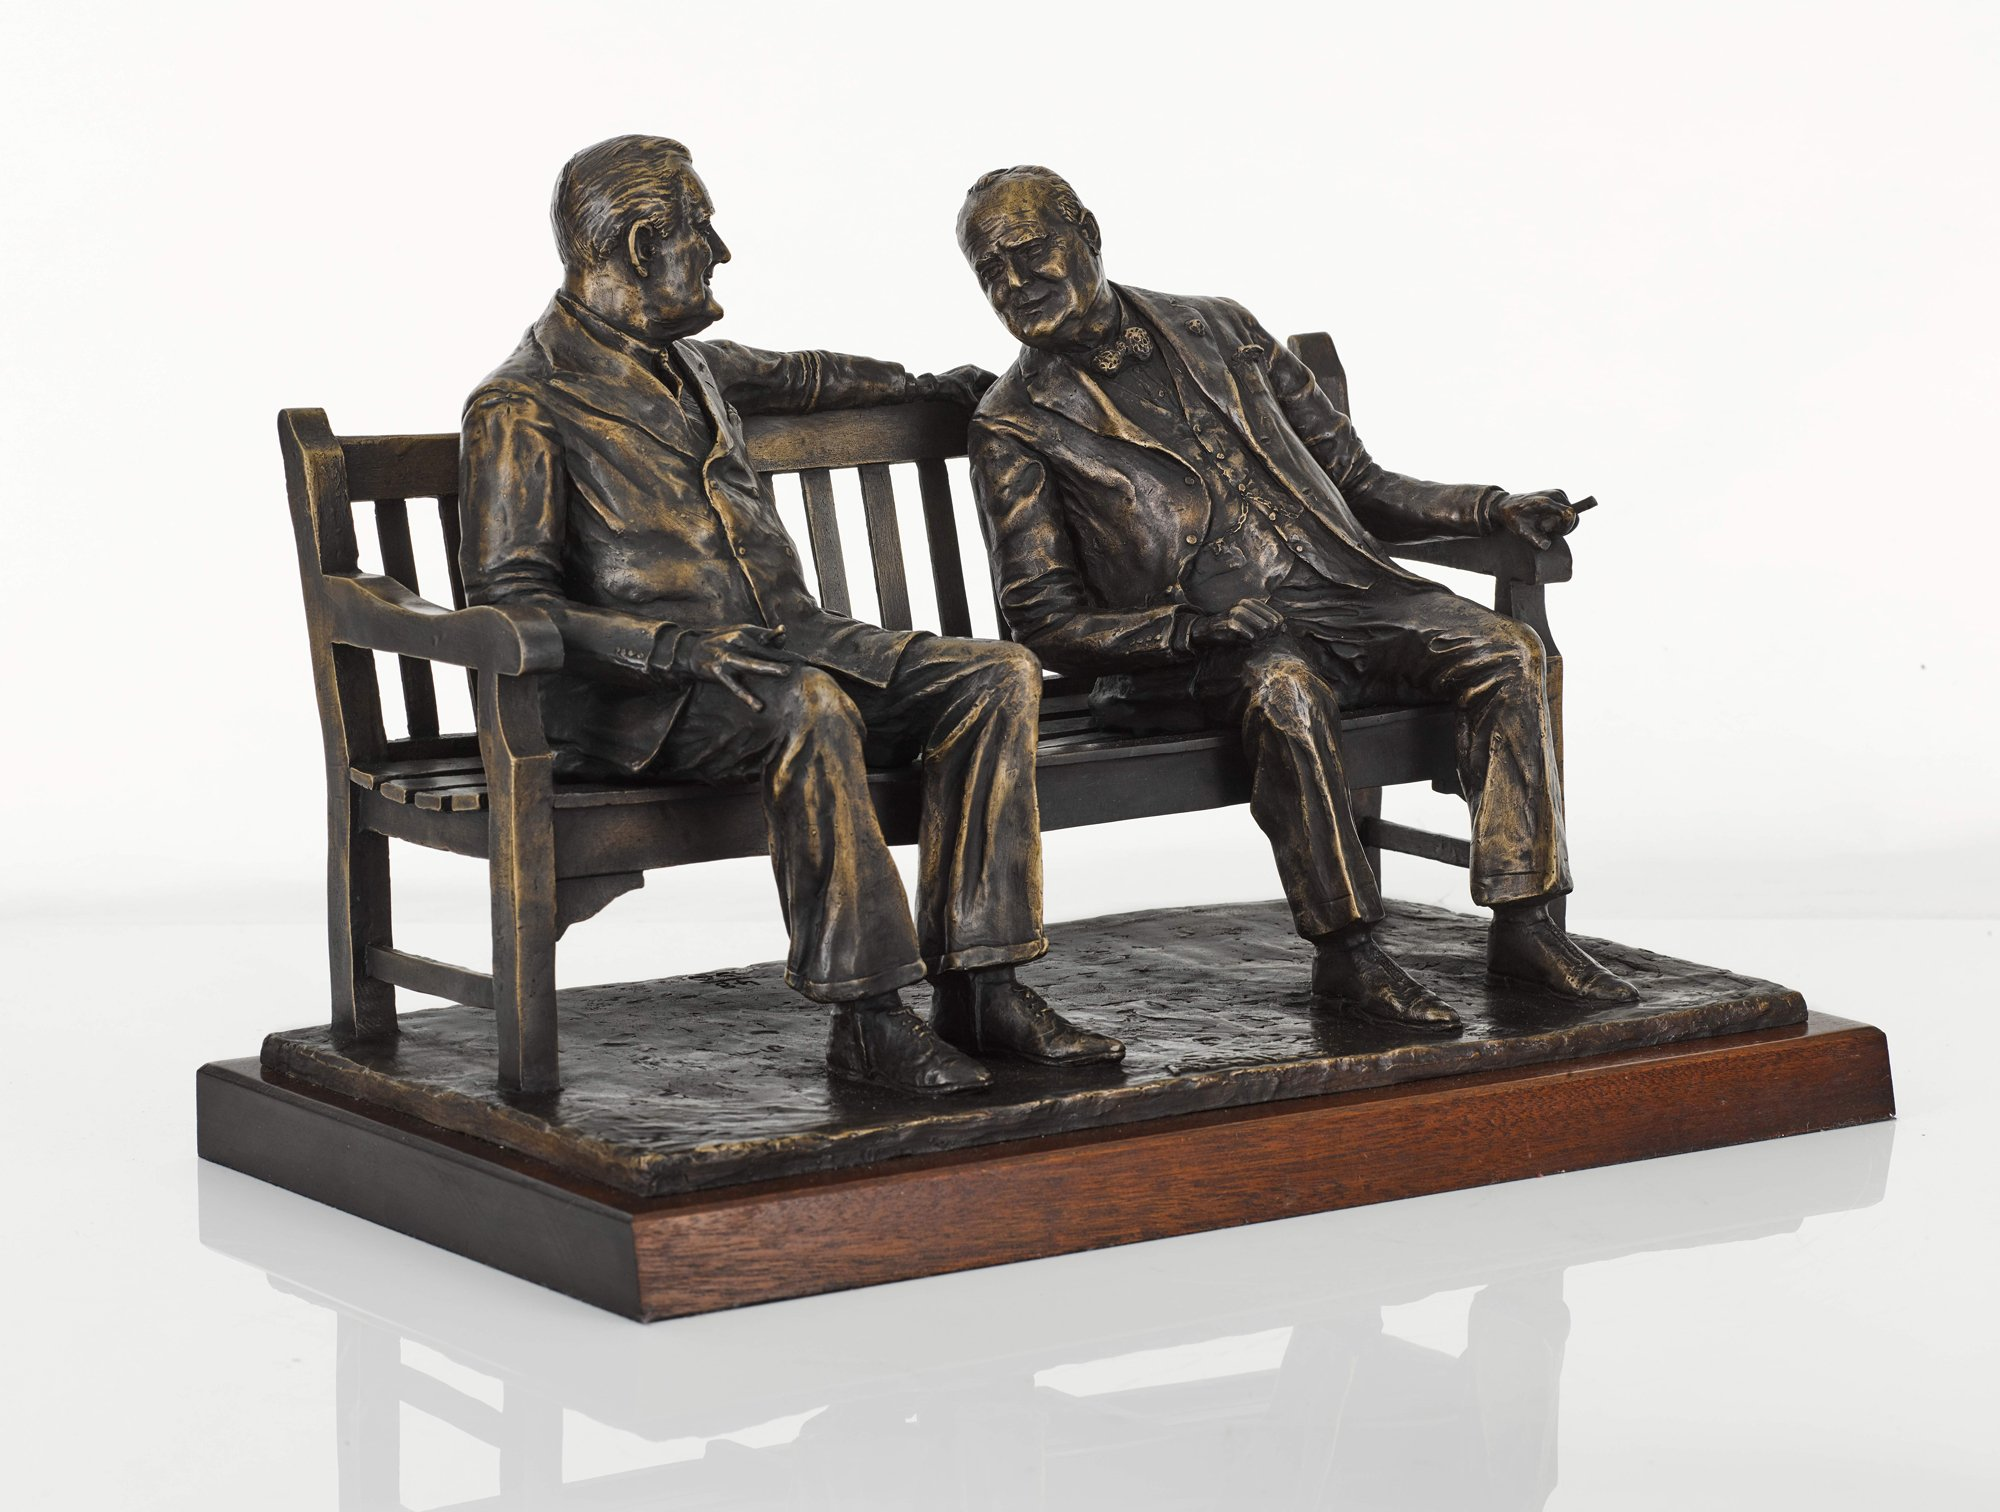 Lawrence Holofcener Allies Maquette I